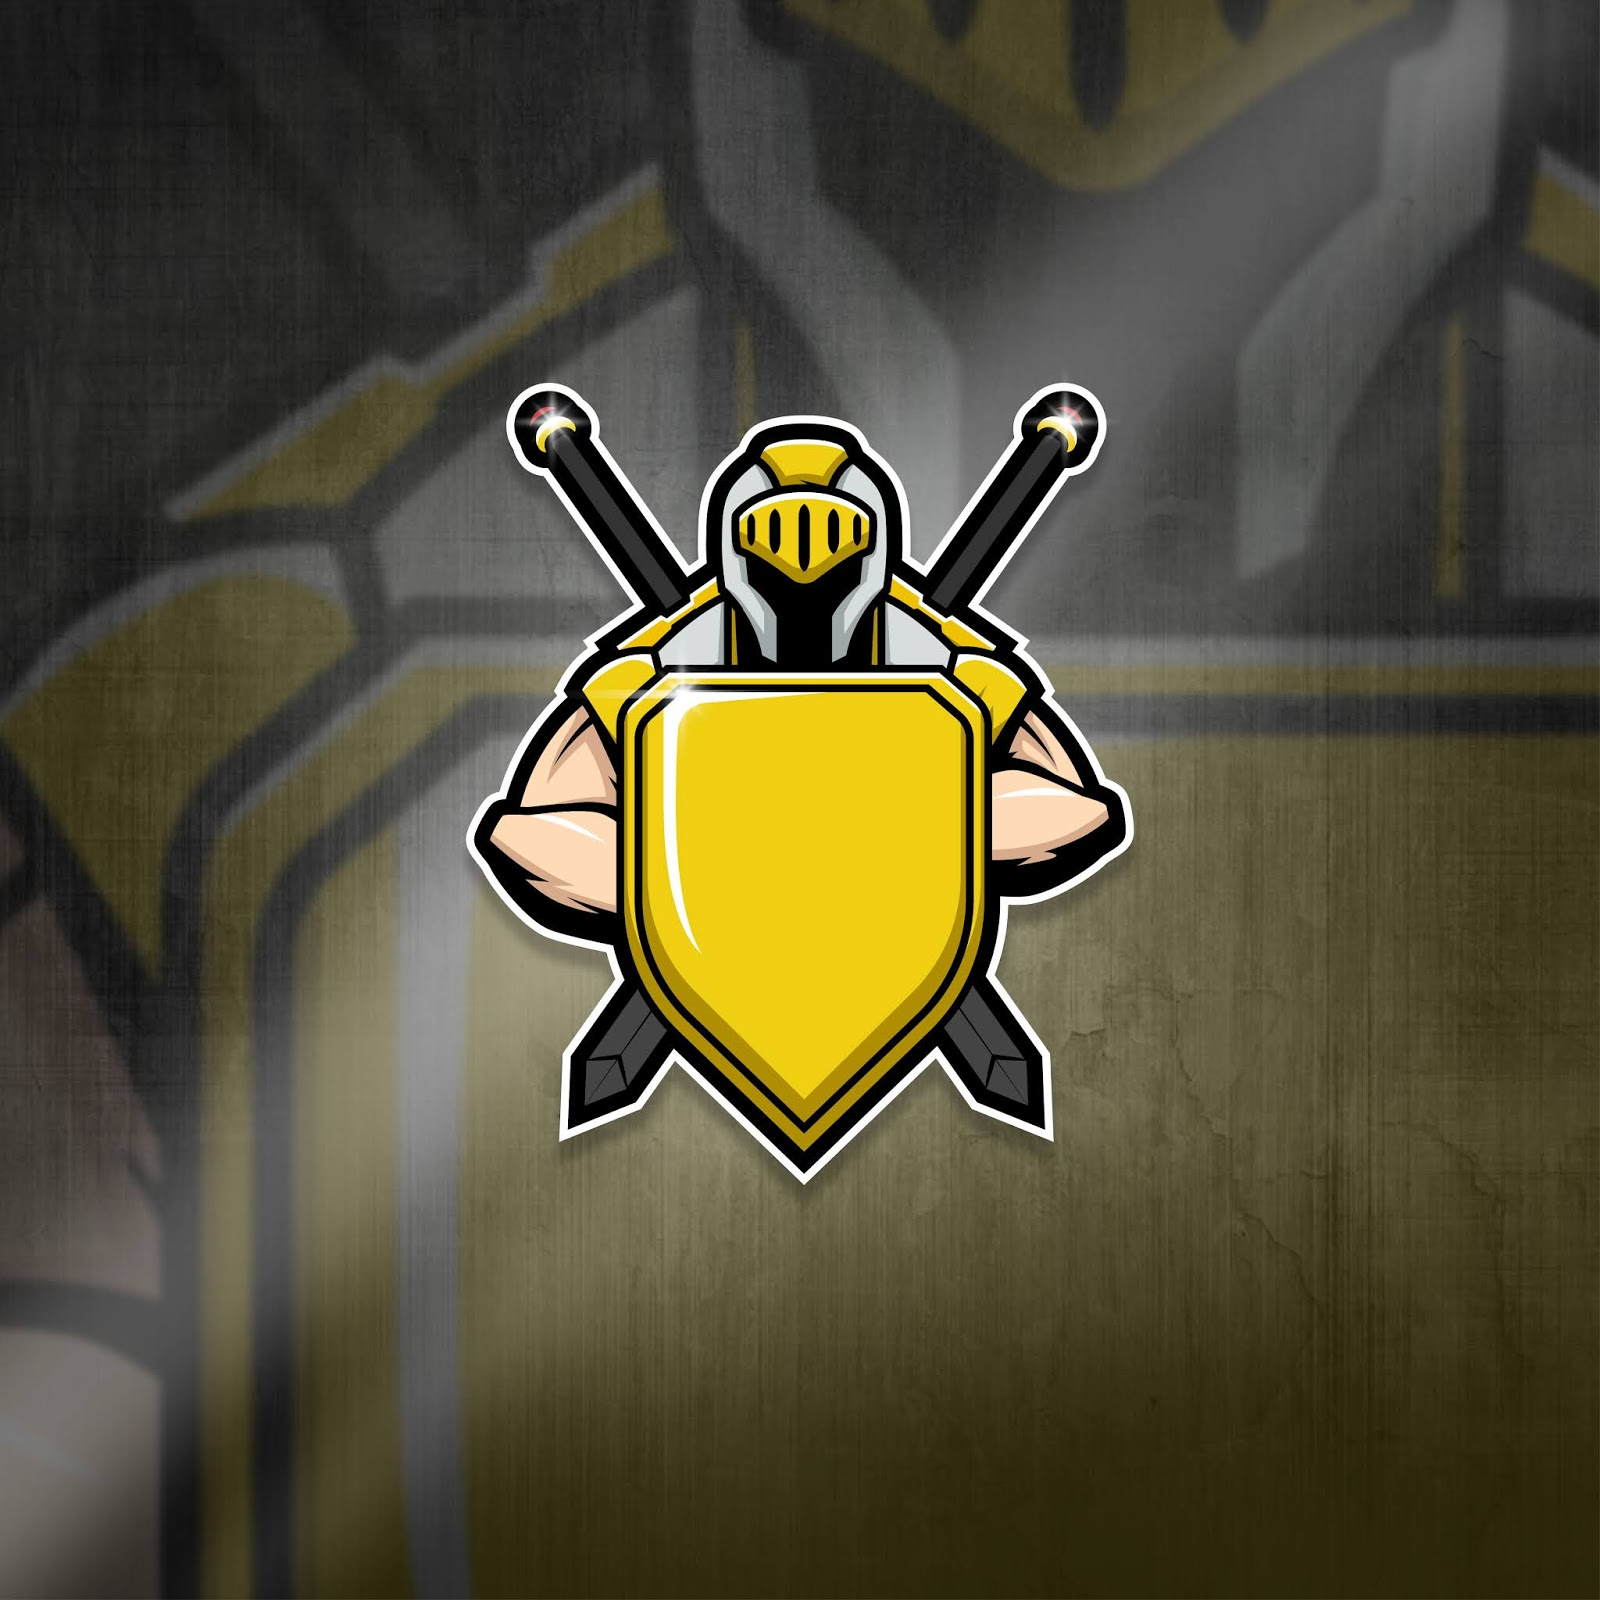 Esports Mascot Logo Team Knight Free Download Vector CDR, AI, EPS and PNG Formats